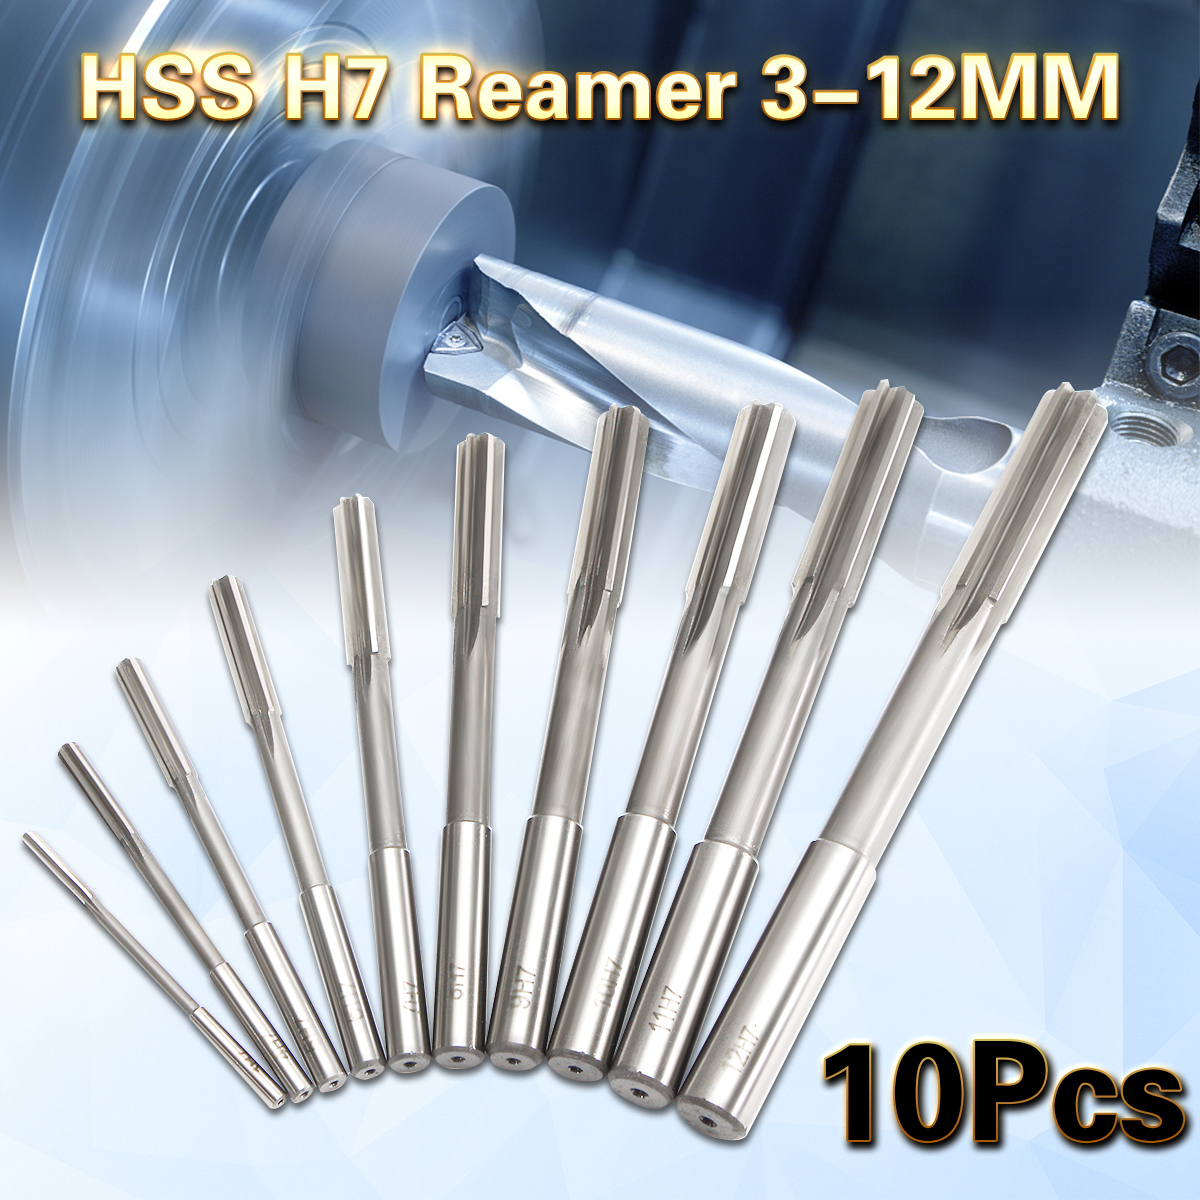 10Pcs HSS H7 Straight Shank Milling Reamers Set Precision Chucking Machine Cutter Tool 3/4/5/6/7/8/9/10/11/12 mm 1pcs hss h7 machinery longer taper shank straight chucking reamers 28x400mm